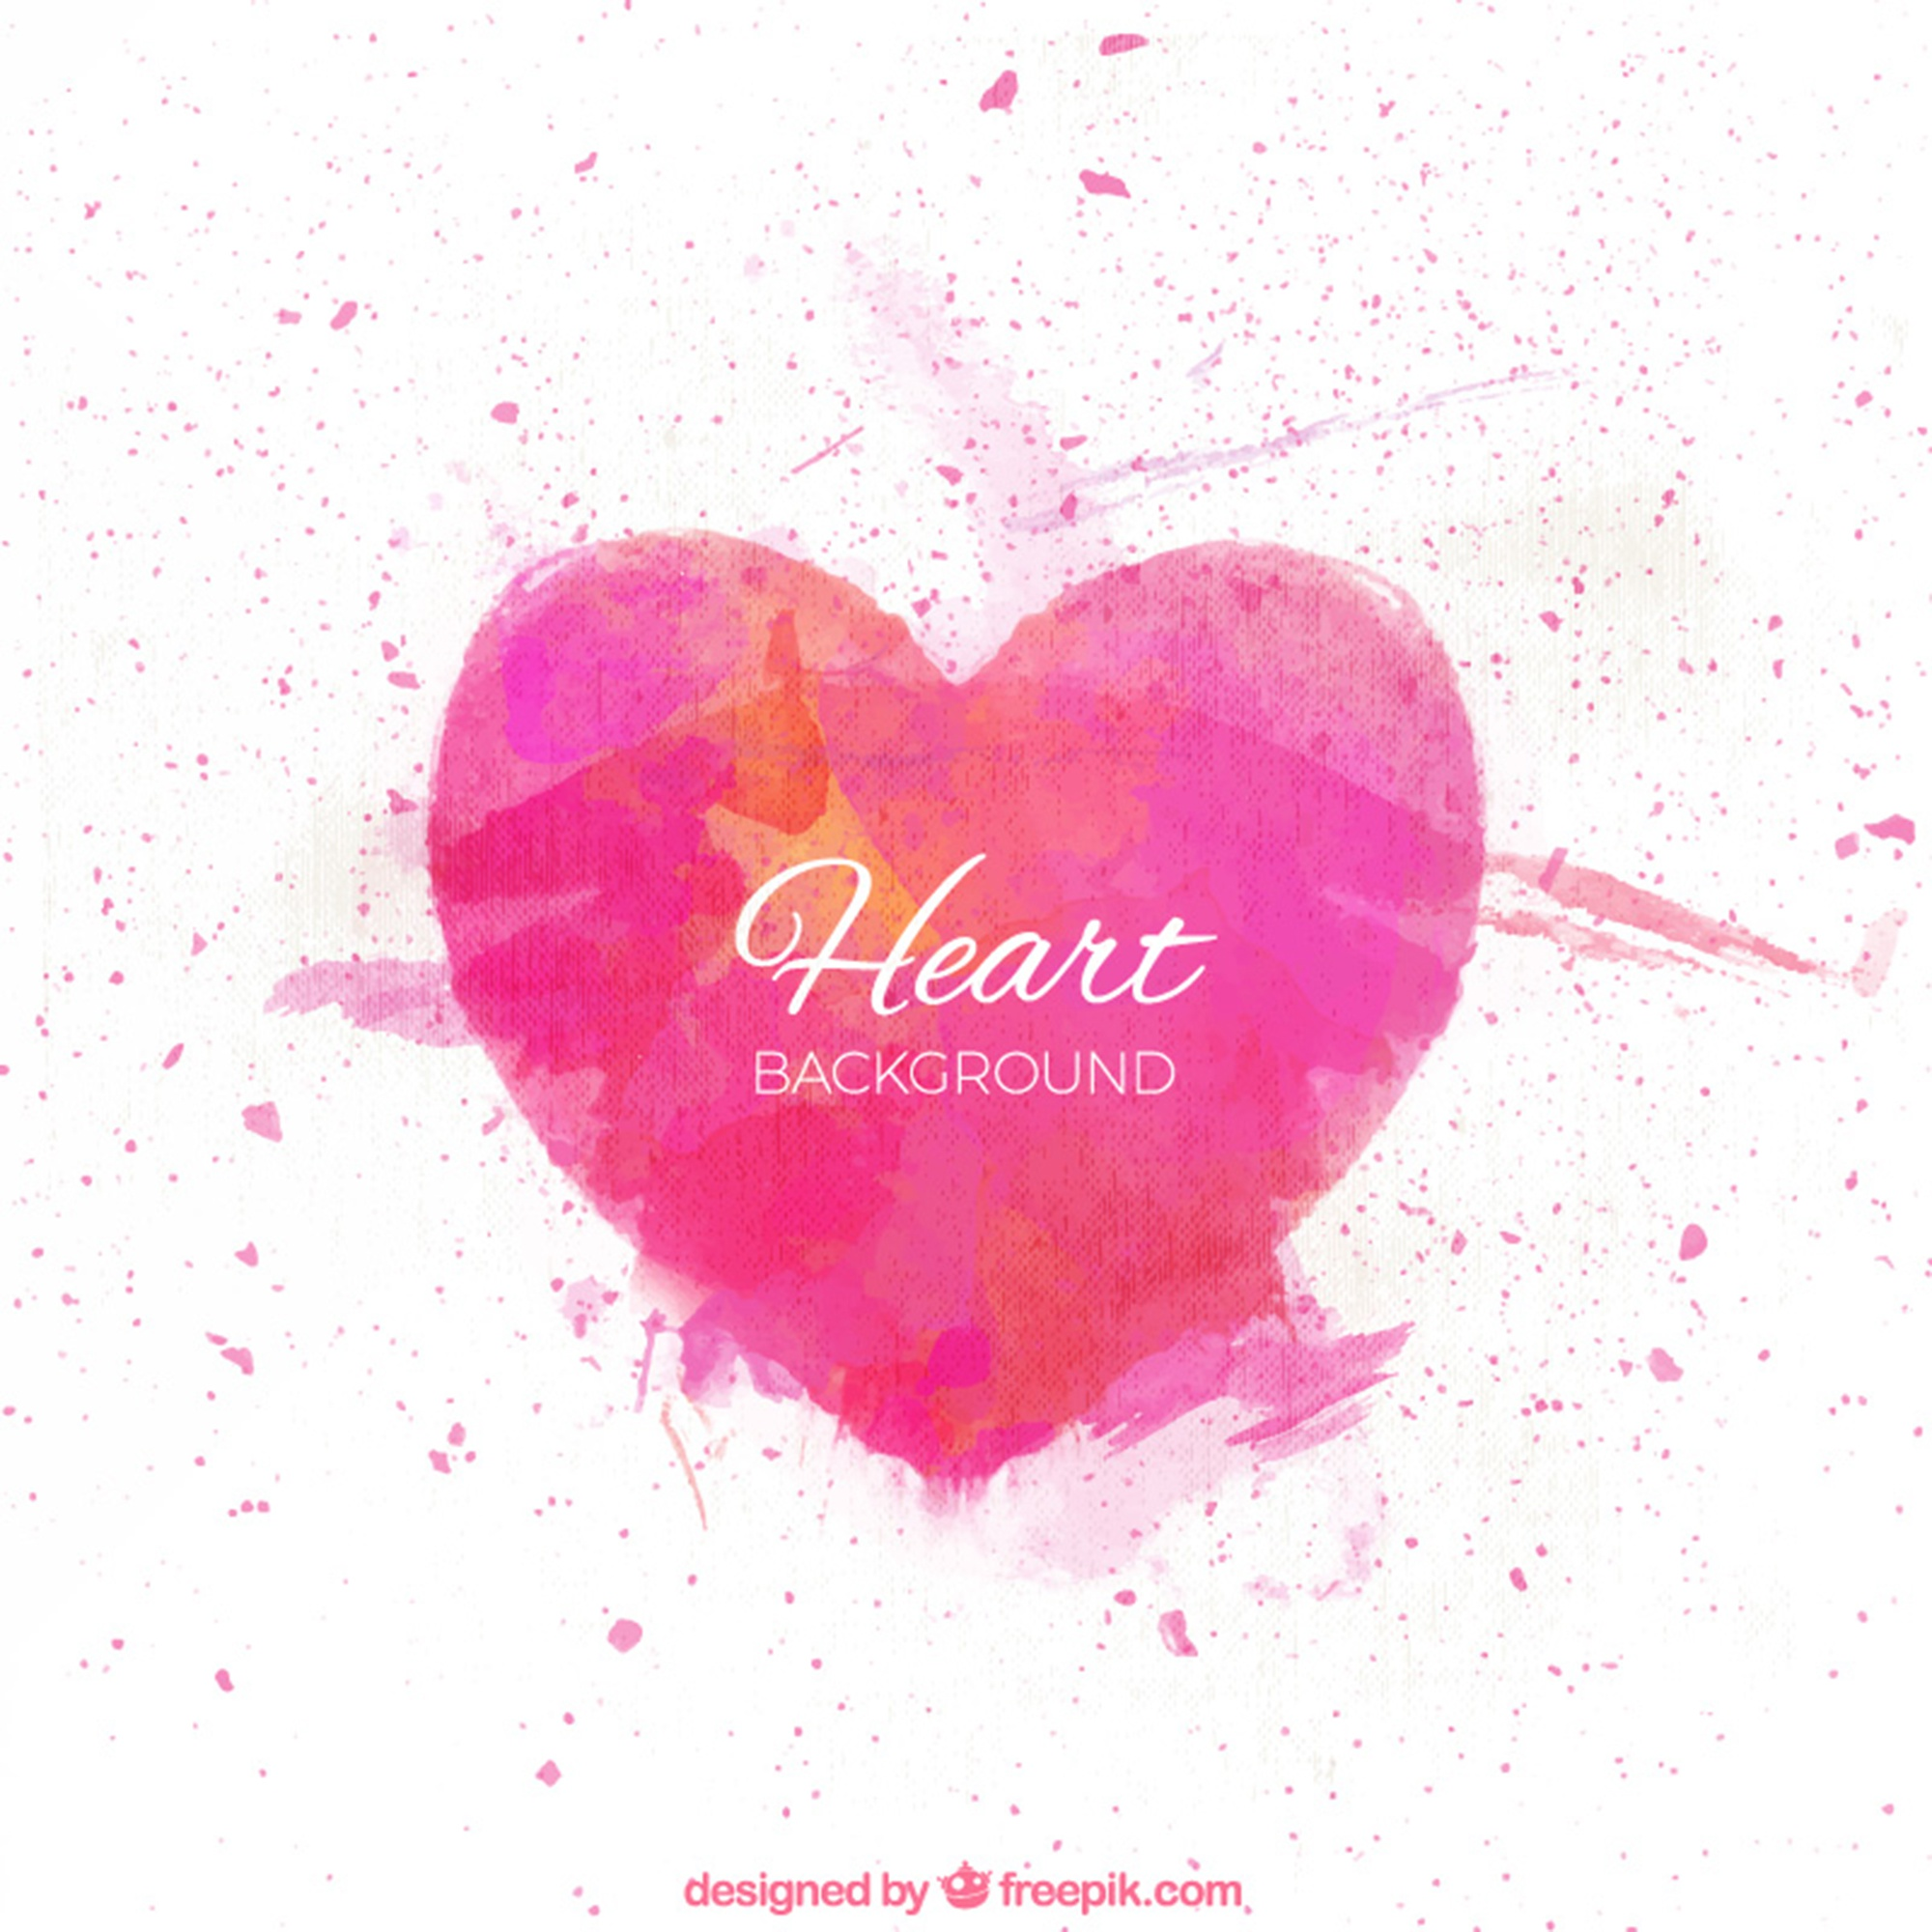 Watercolor abstract heart background